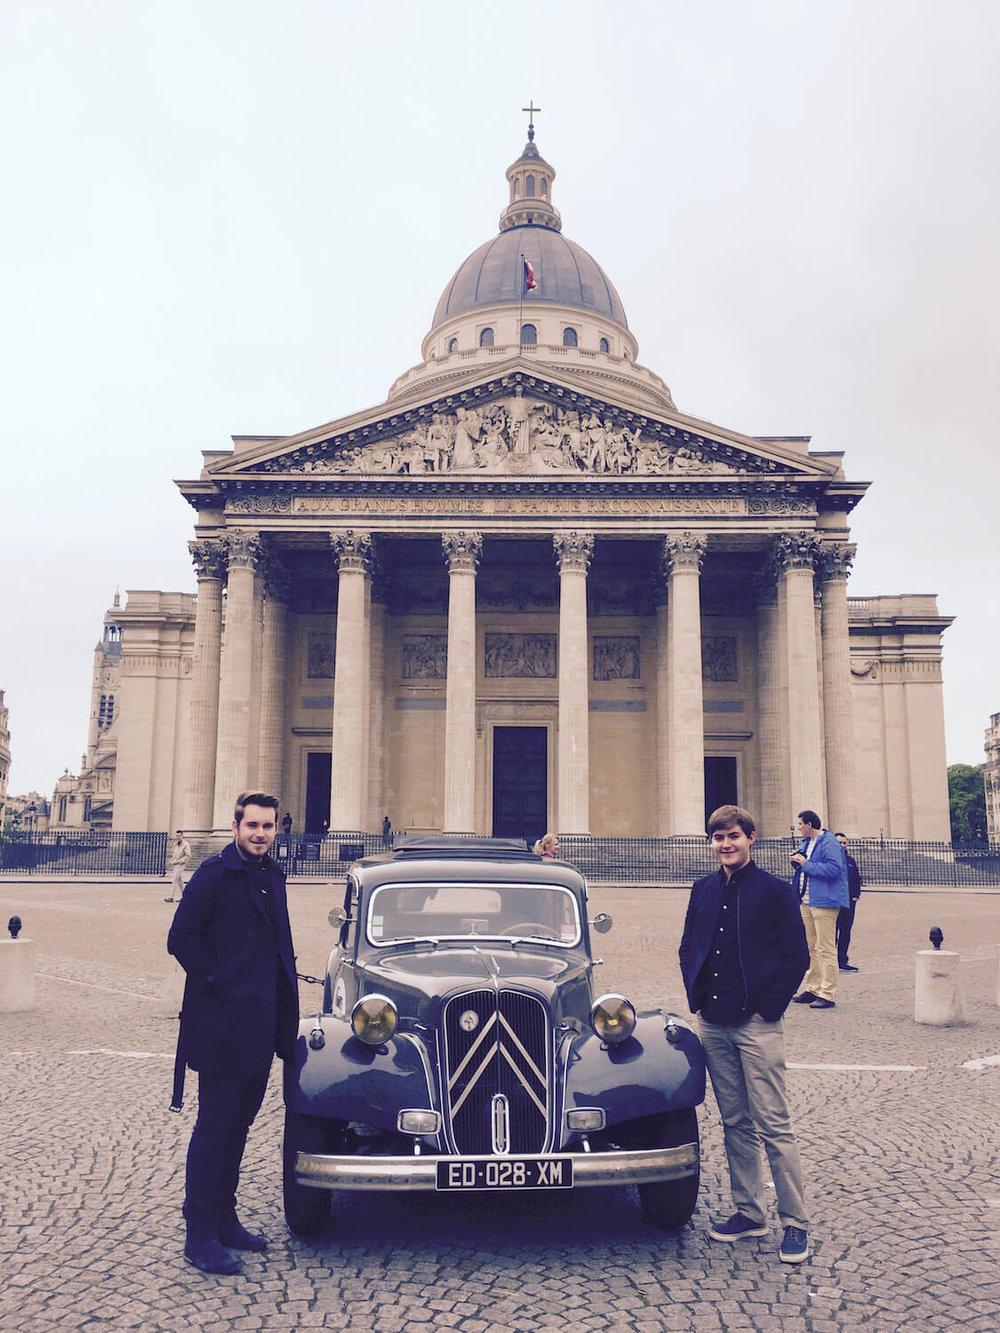 City Wheels Paris Tour - Our Departure Board - Andrew and damon with a vintage citroen Traction avant